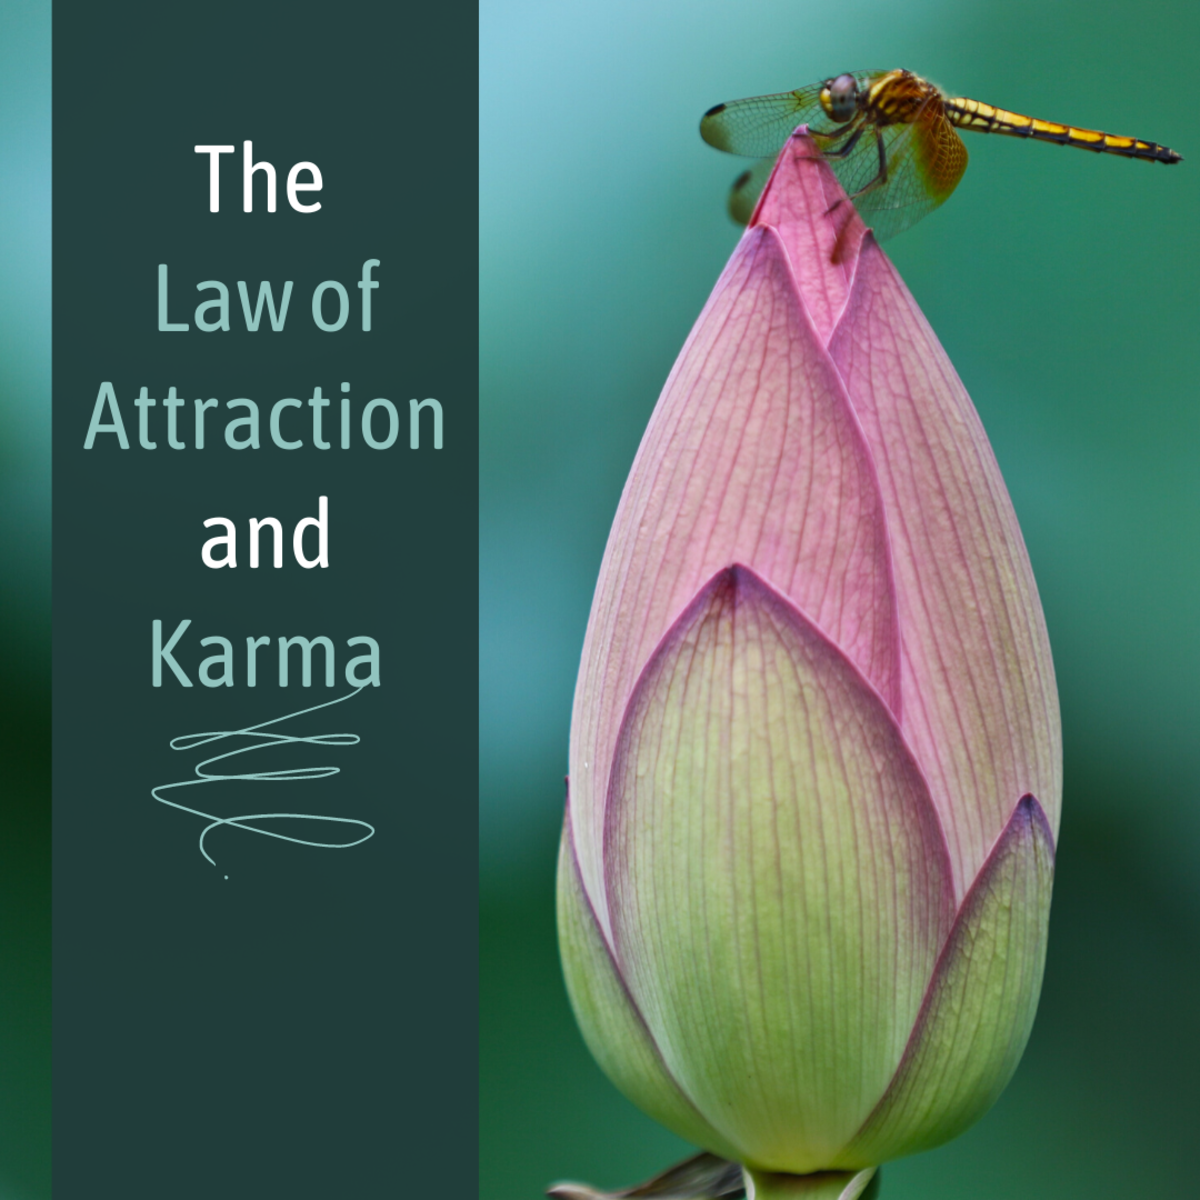 Learn how the Law of Attraction relates to paying off Karmic debts.